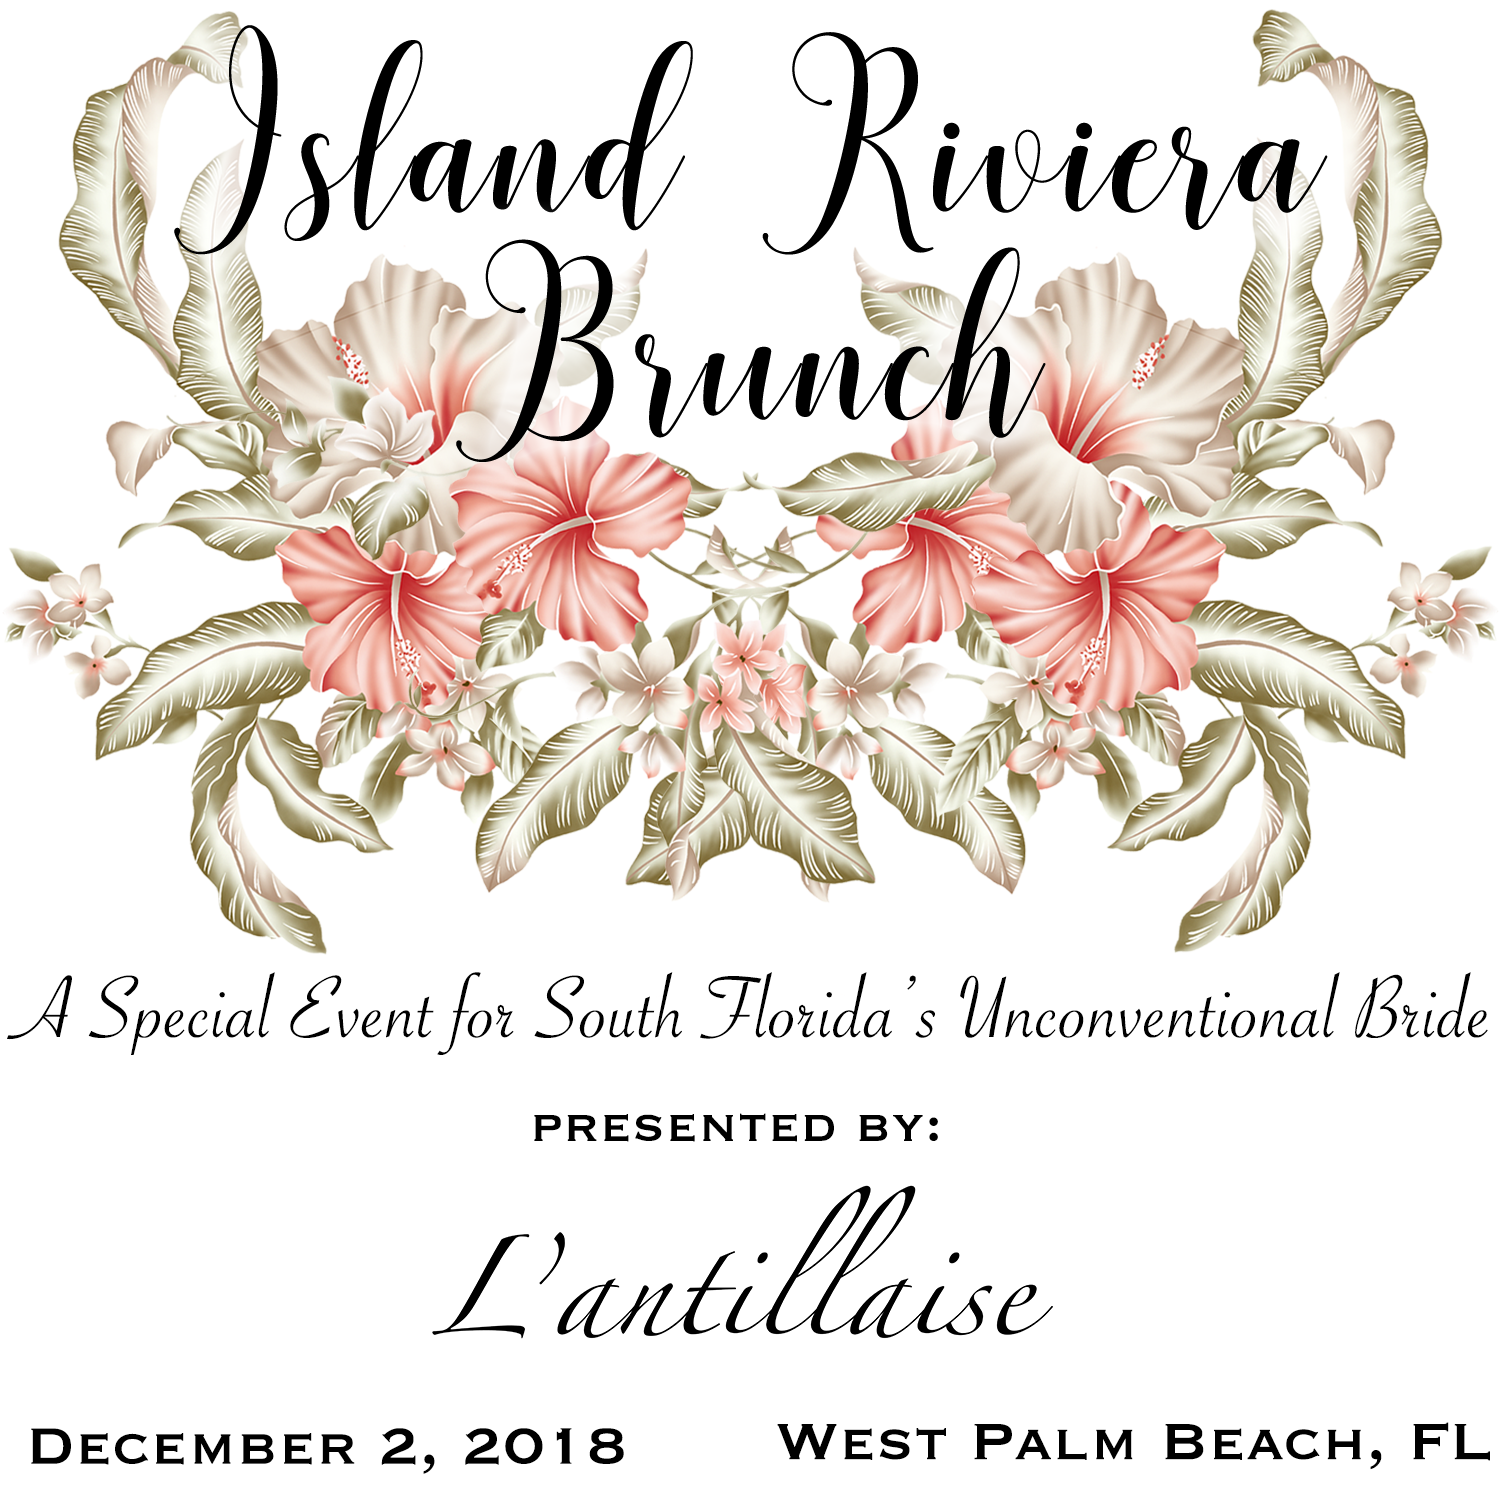 Island riviera Bridal brunch - Big news L'antillaise lovers! We've decided to launch a brand new option for South Florida's unconventional brides to find what they need to make the wedding of their dreams come true. This December, we will be hosting an EPIC bridal brunch alongside a group of insanely talented #girlbosses to give free spirited brides in the area a taste of what it's like to do things a little differently. Our goal is create a new paradigm in the presentation of bridal while also empowering women entrepreneurs in the bridal industry. So mark your calendars and grab your best friends to join us while we celebrate your light hearted approach to love and marriage.